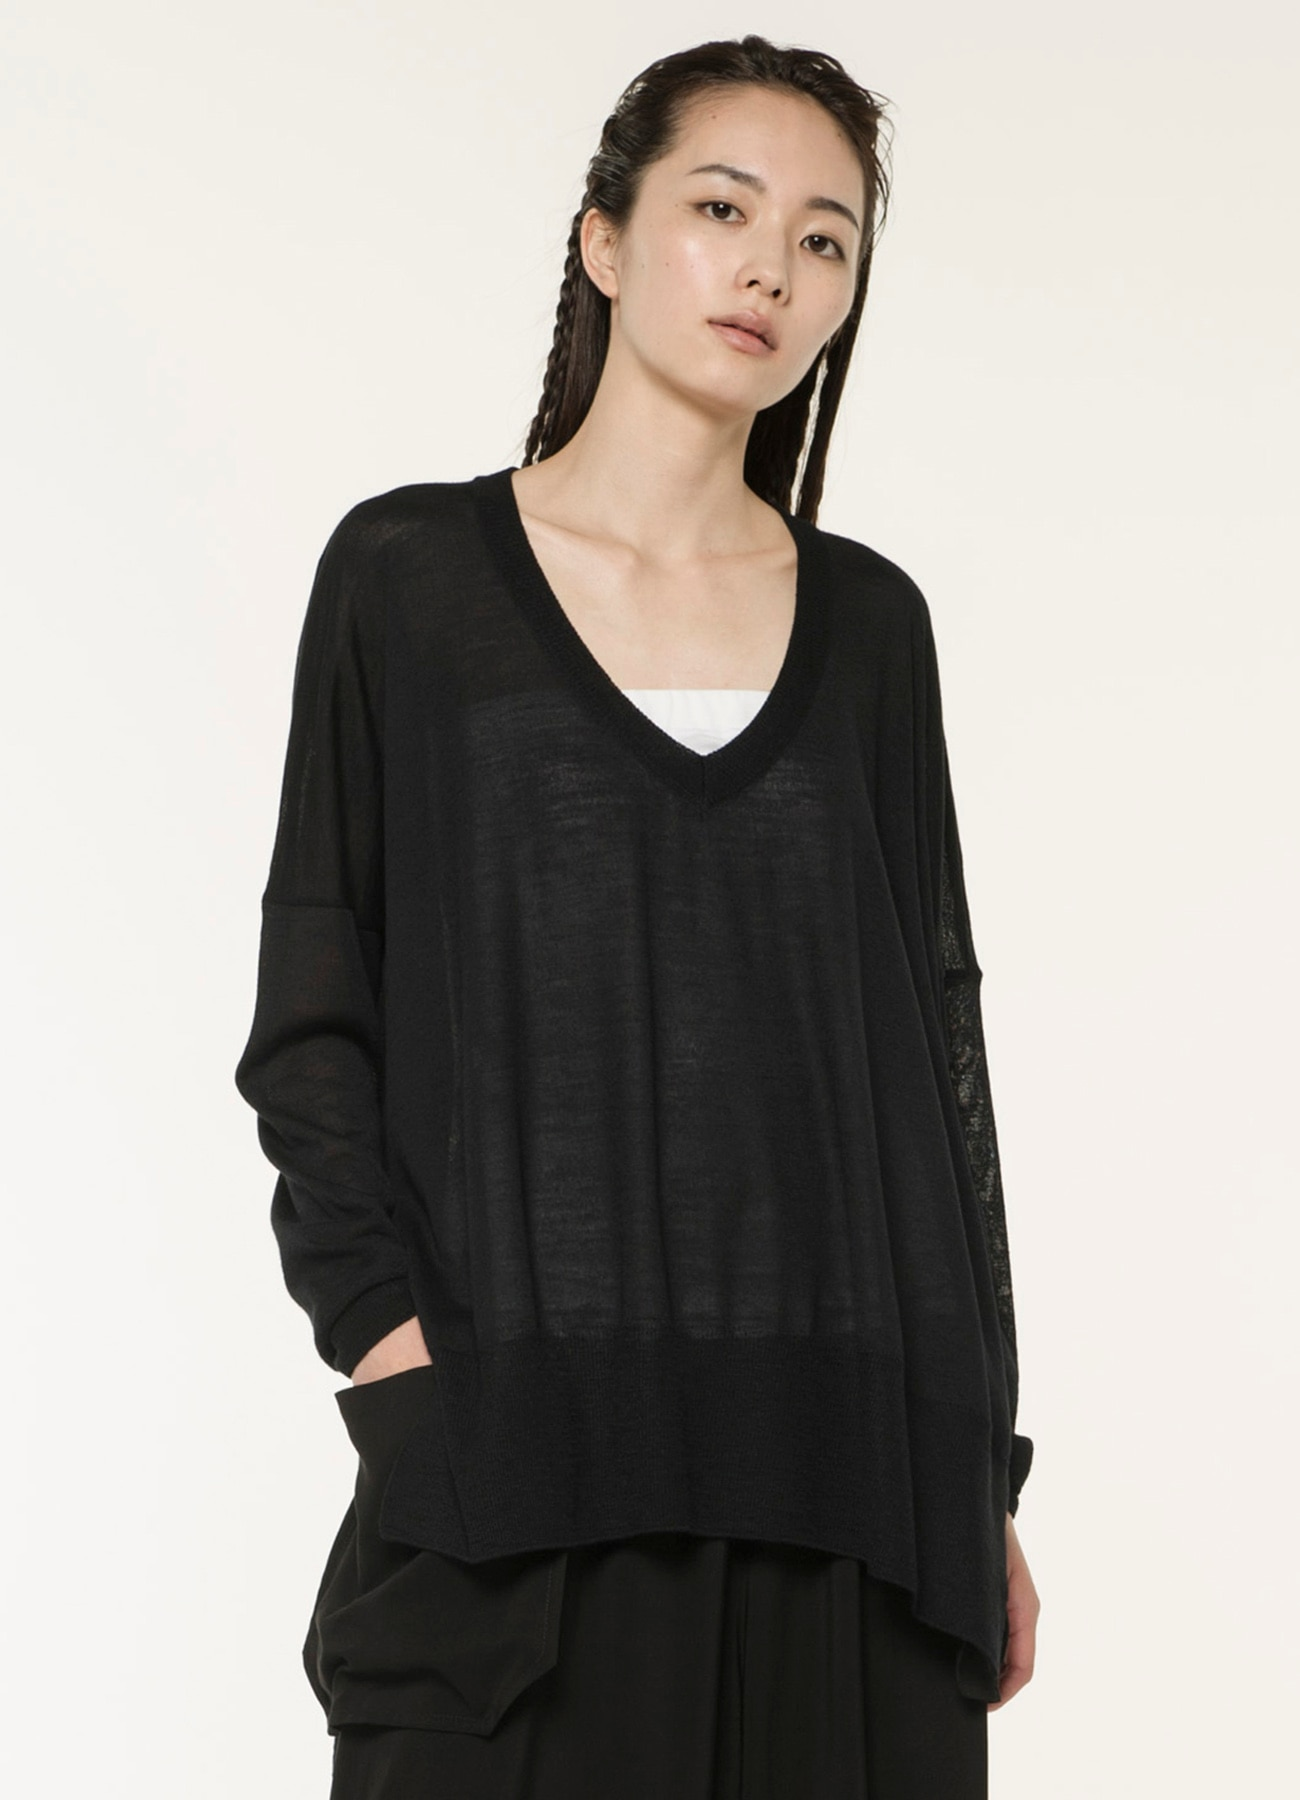 Ry/W Plain Stitches Square Sweater